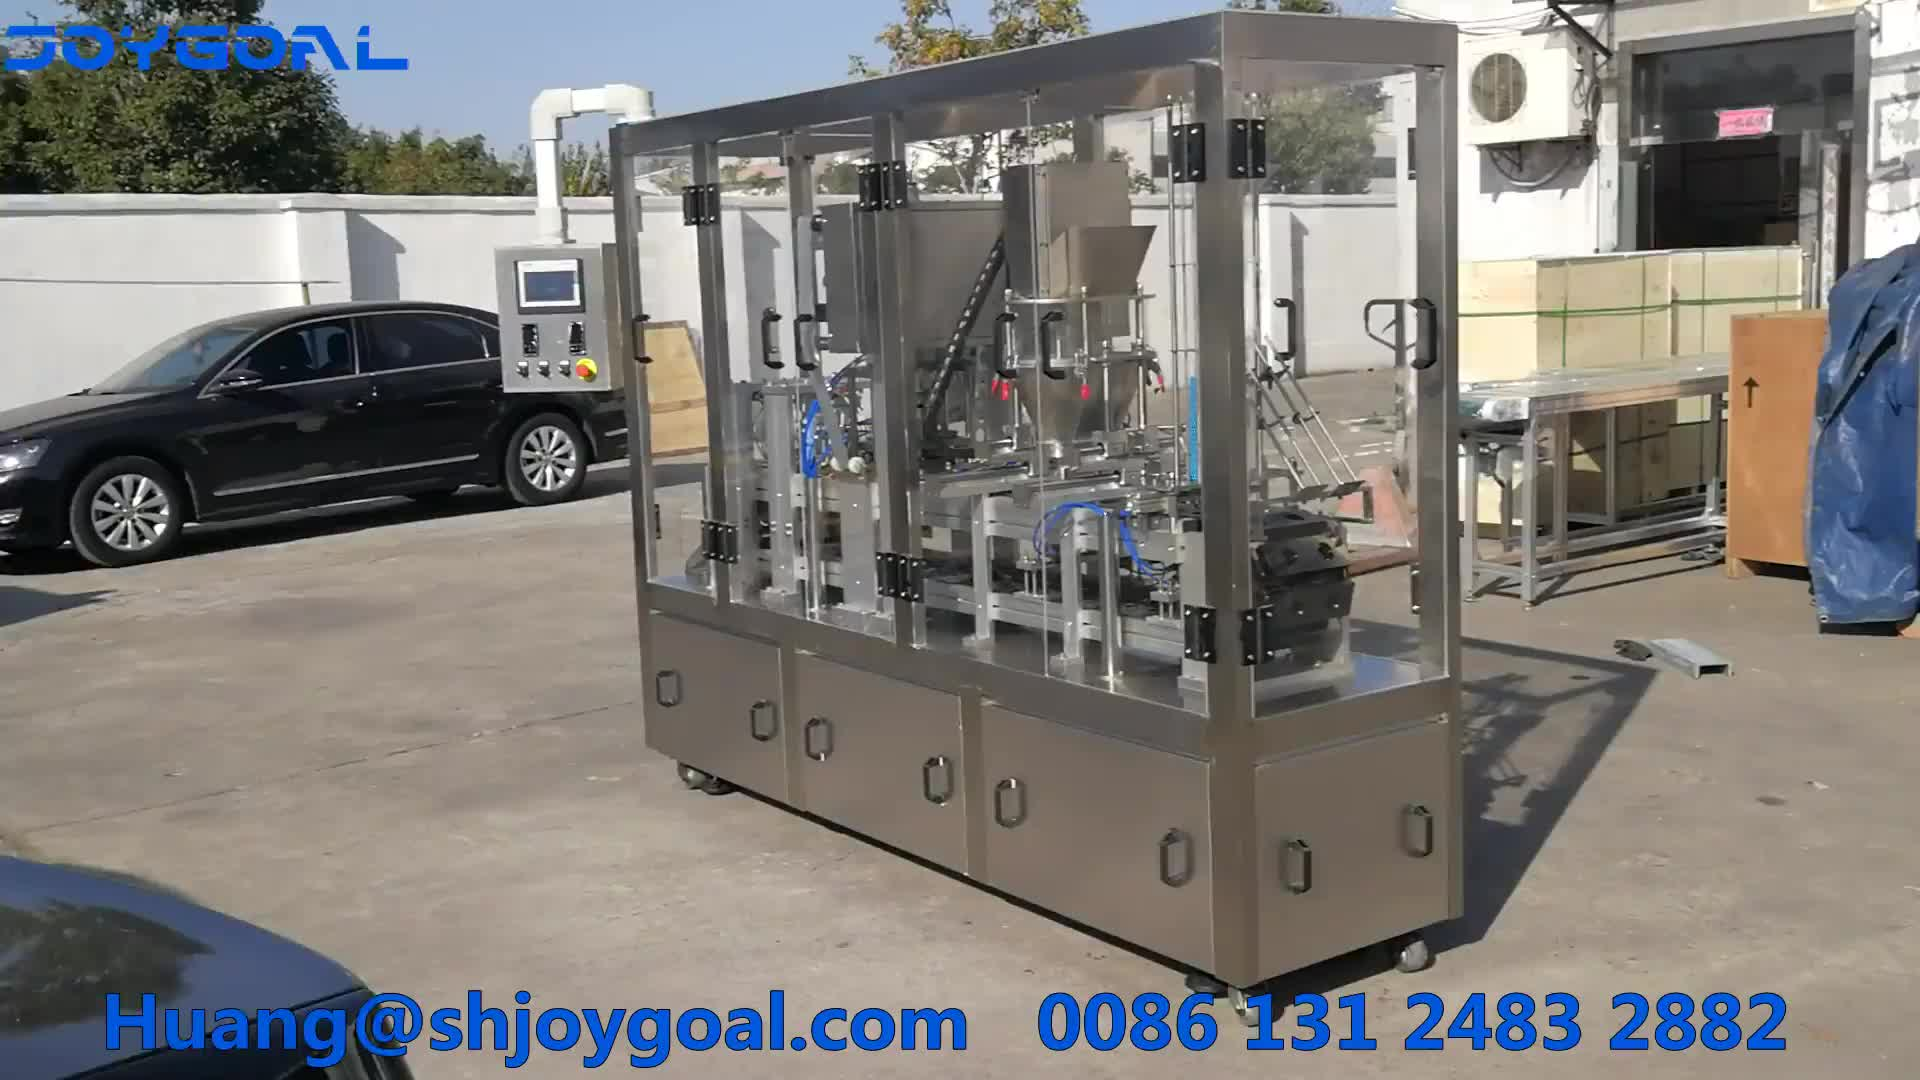 JOYGOAL Automatic nespresso coffee capsule filling and sealing machine with nitrogen flushing [ Roll film, punch cutting ]